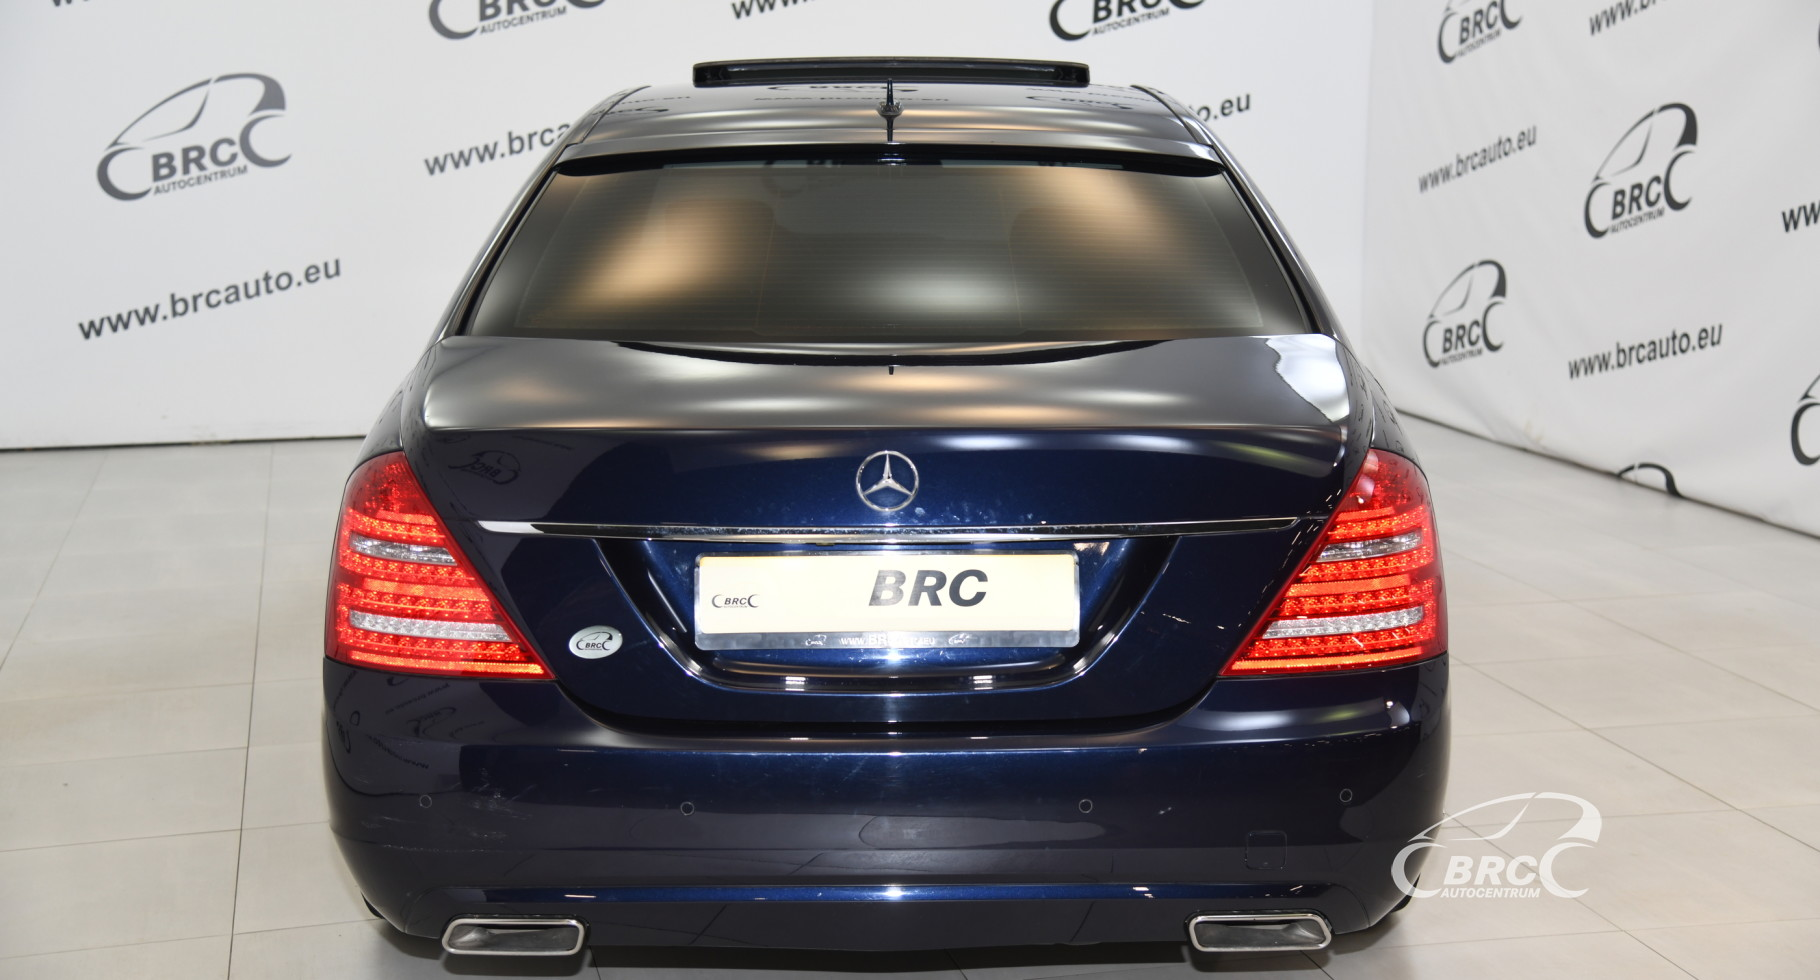 Mercedes-Benz S 350 BlueTEC 4 Matic Automatas